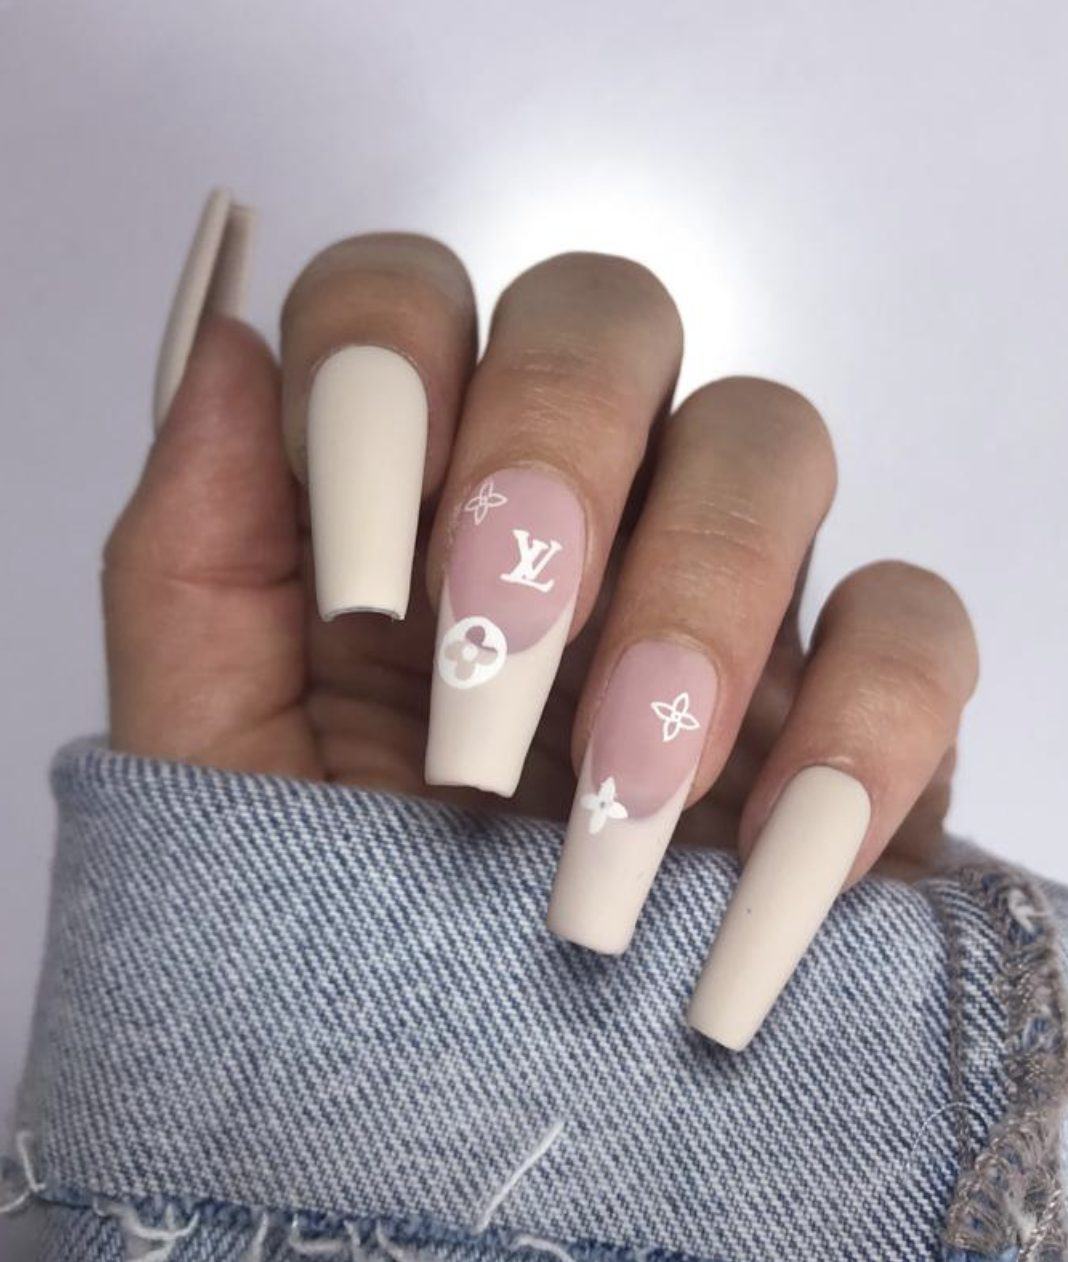 Nude Louis Vuitton inspired French tip nails